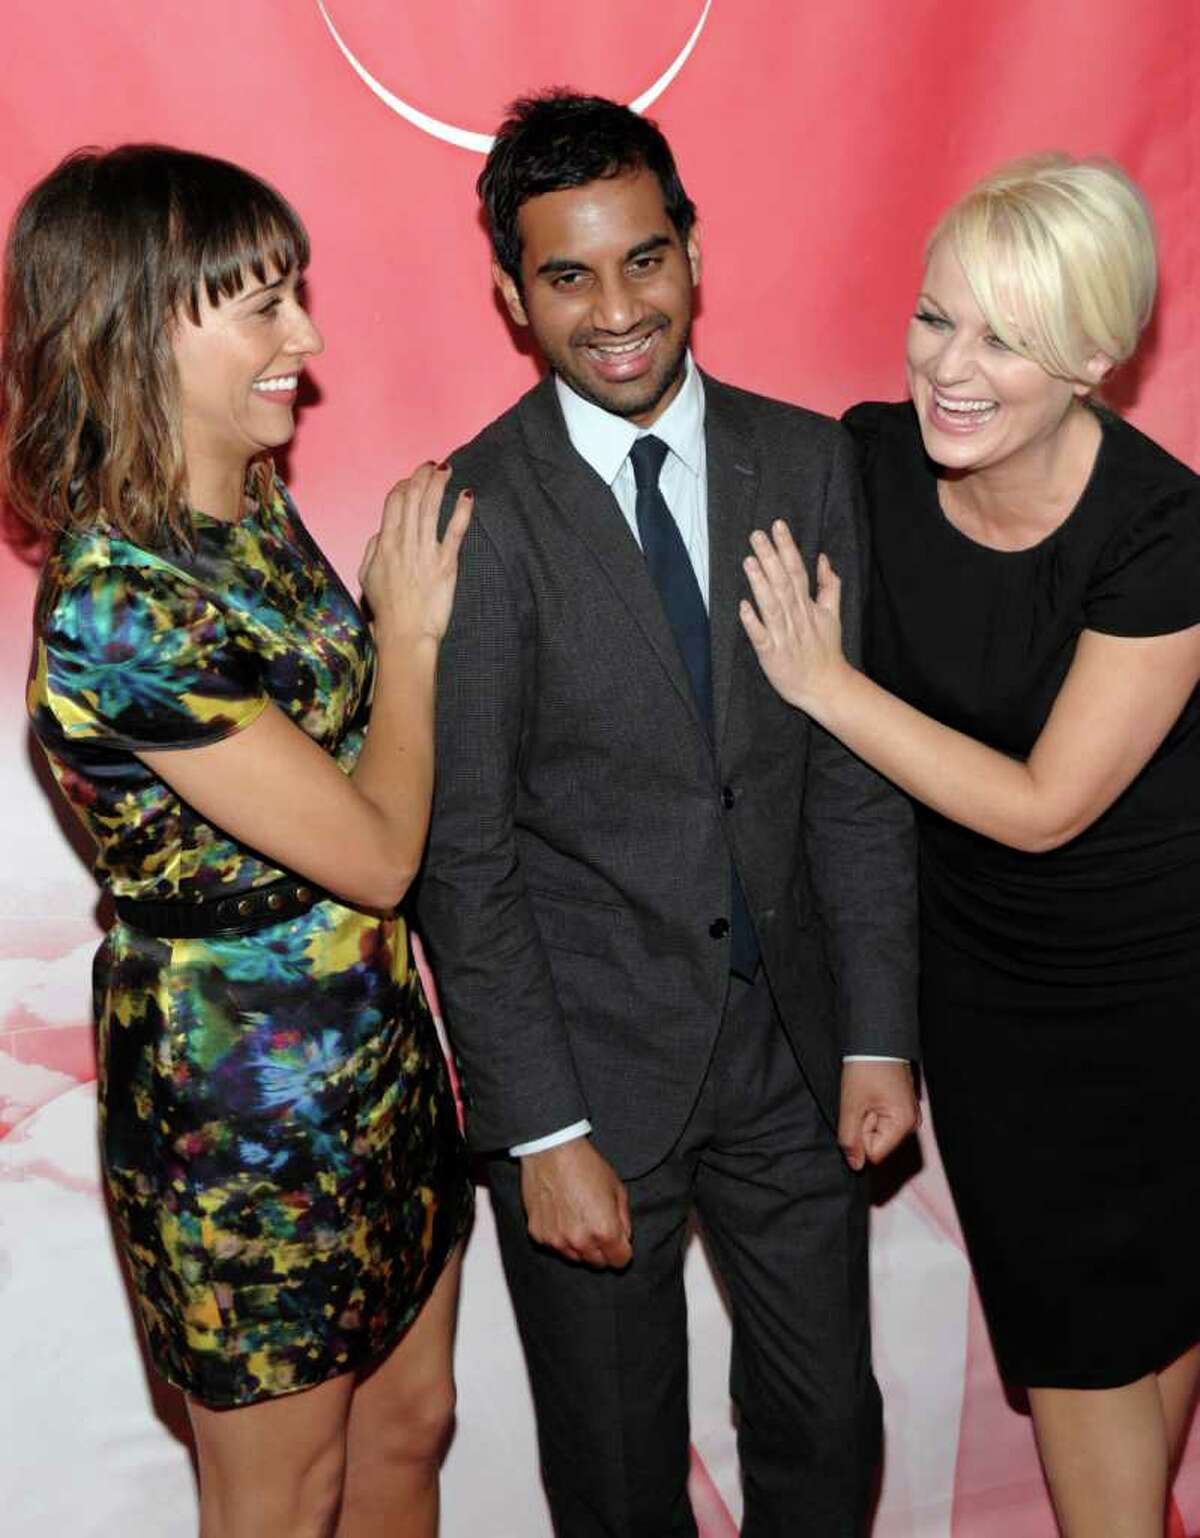 Actress Rashida Jones, left, actor Aziz Ansari, center, and actress Amy Poehler arrive at the NBC Universal 2011 Winter Press Tour party in Pasadena, Calif. on Thursday, Jan. 13, 2011.